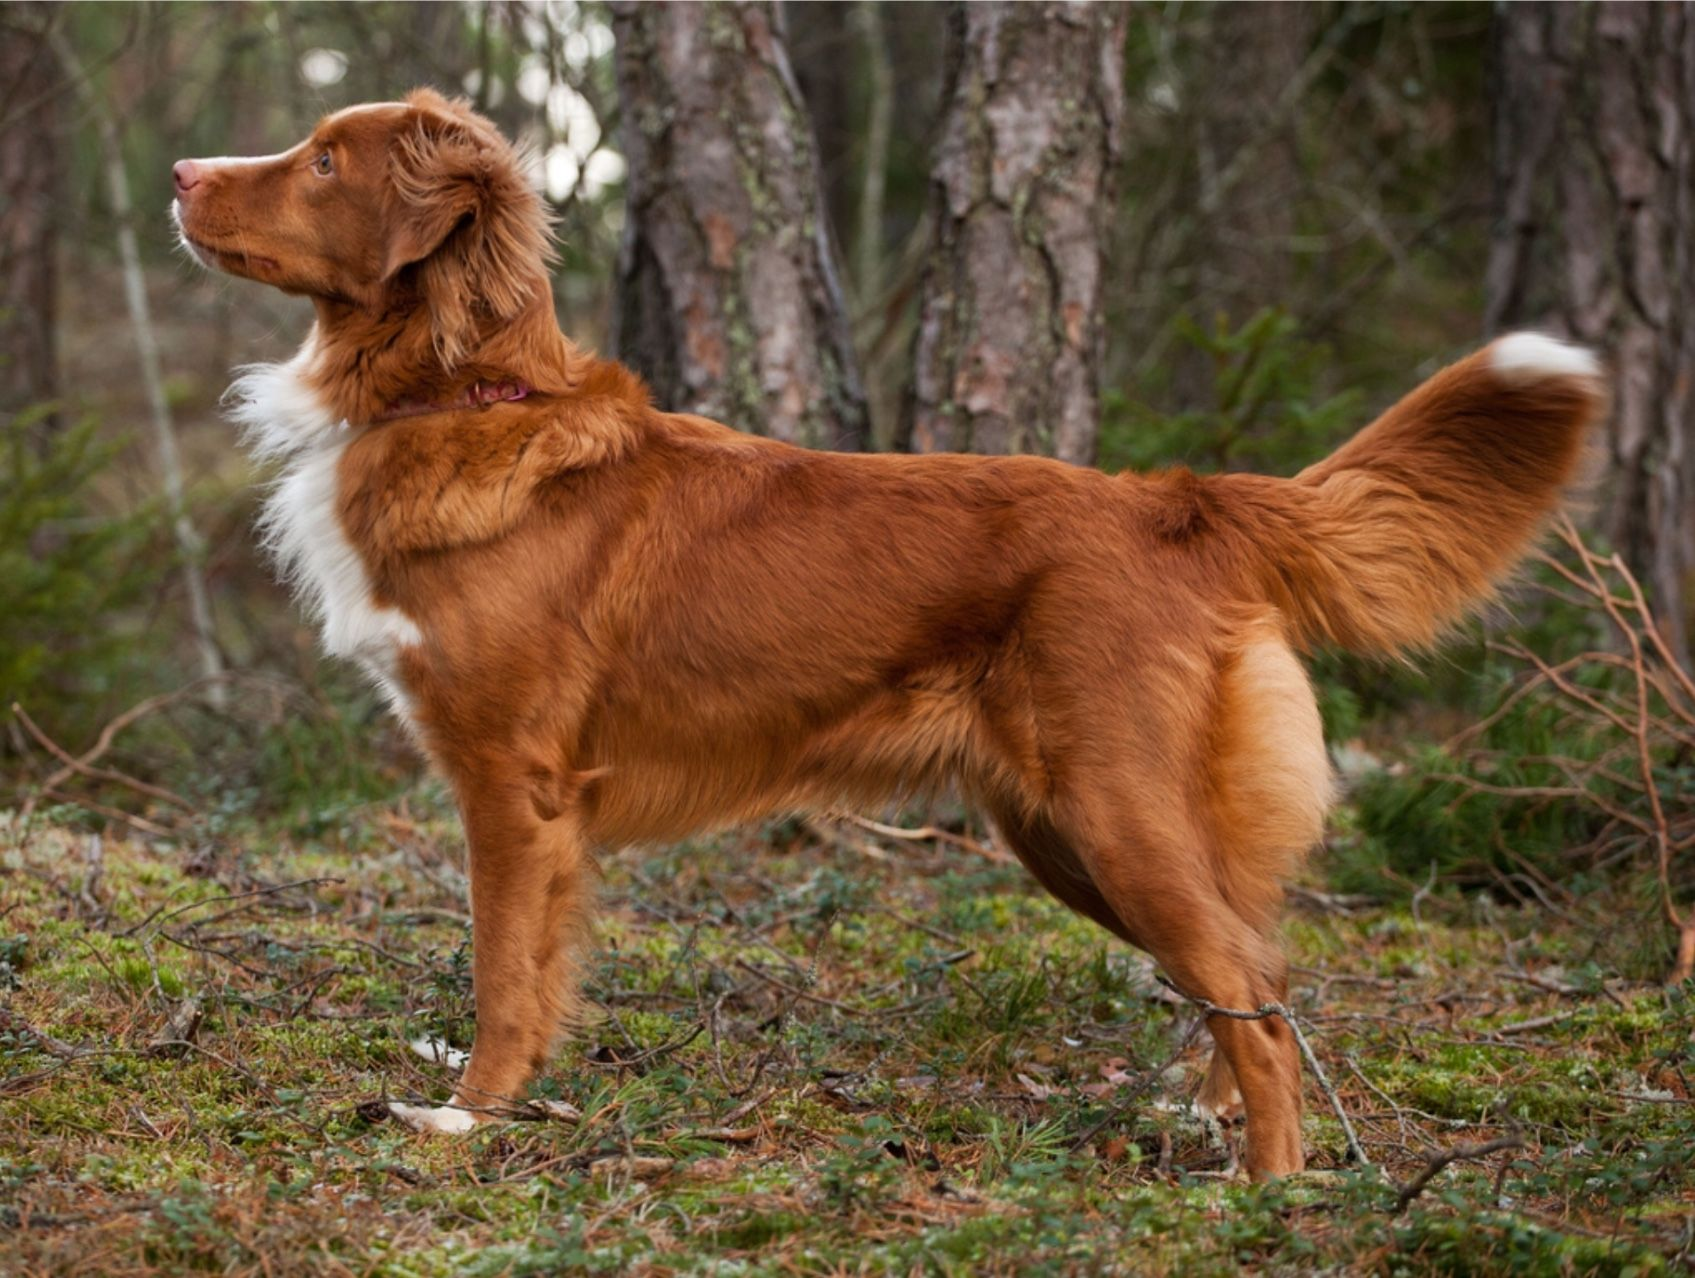 Nova Scotia Duck Tolling Retreiver The Toller Is A Medium Sized Sporting Dog Intelligent Eager To Please And High Energy The N Dog Breeds Dogs Toller Dog